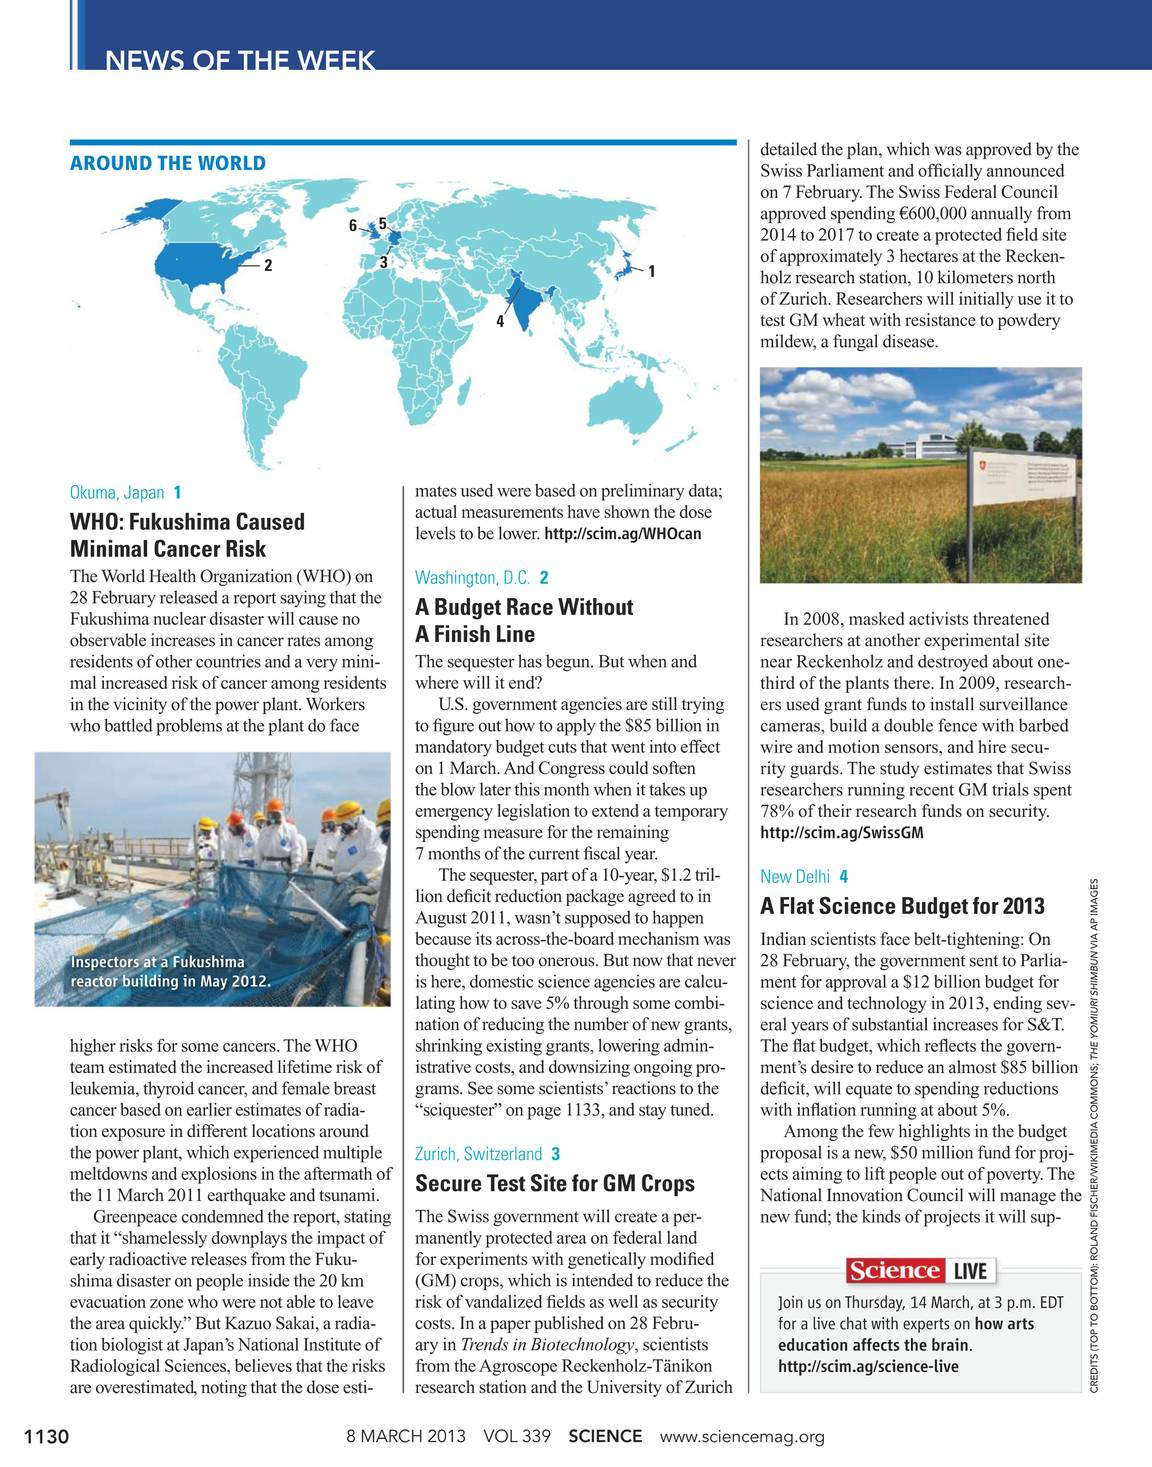 Science Magazine - 8 March 2013 - page 1129